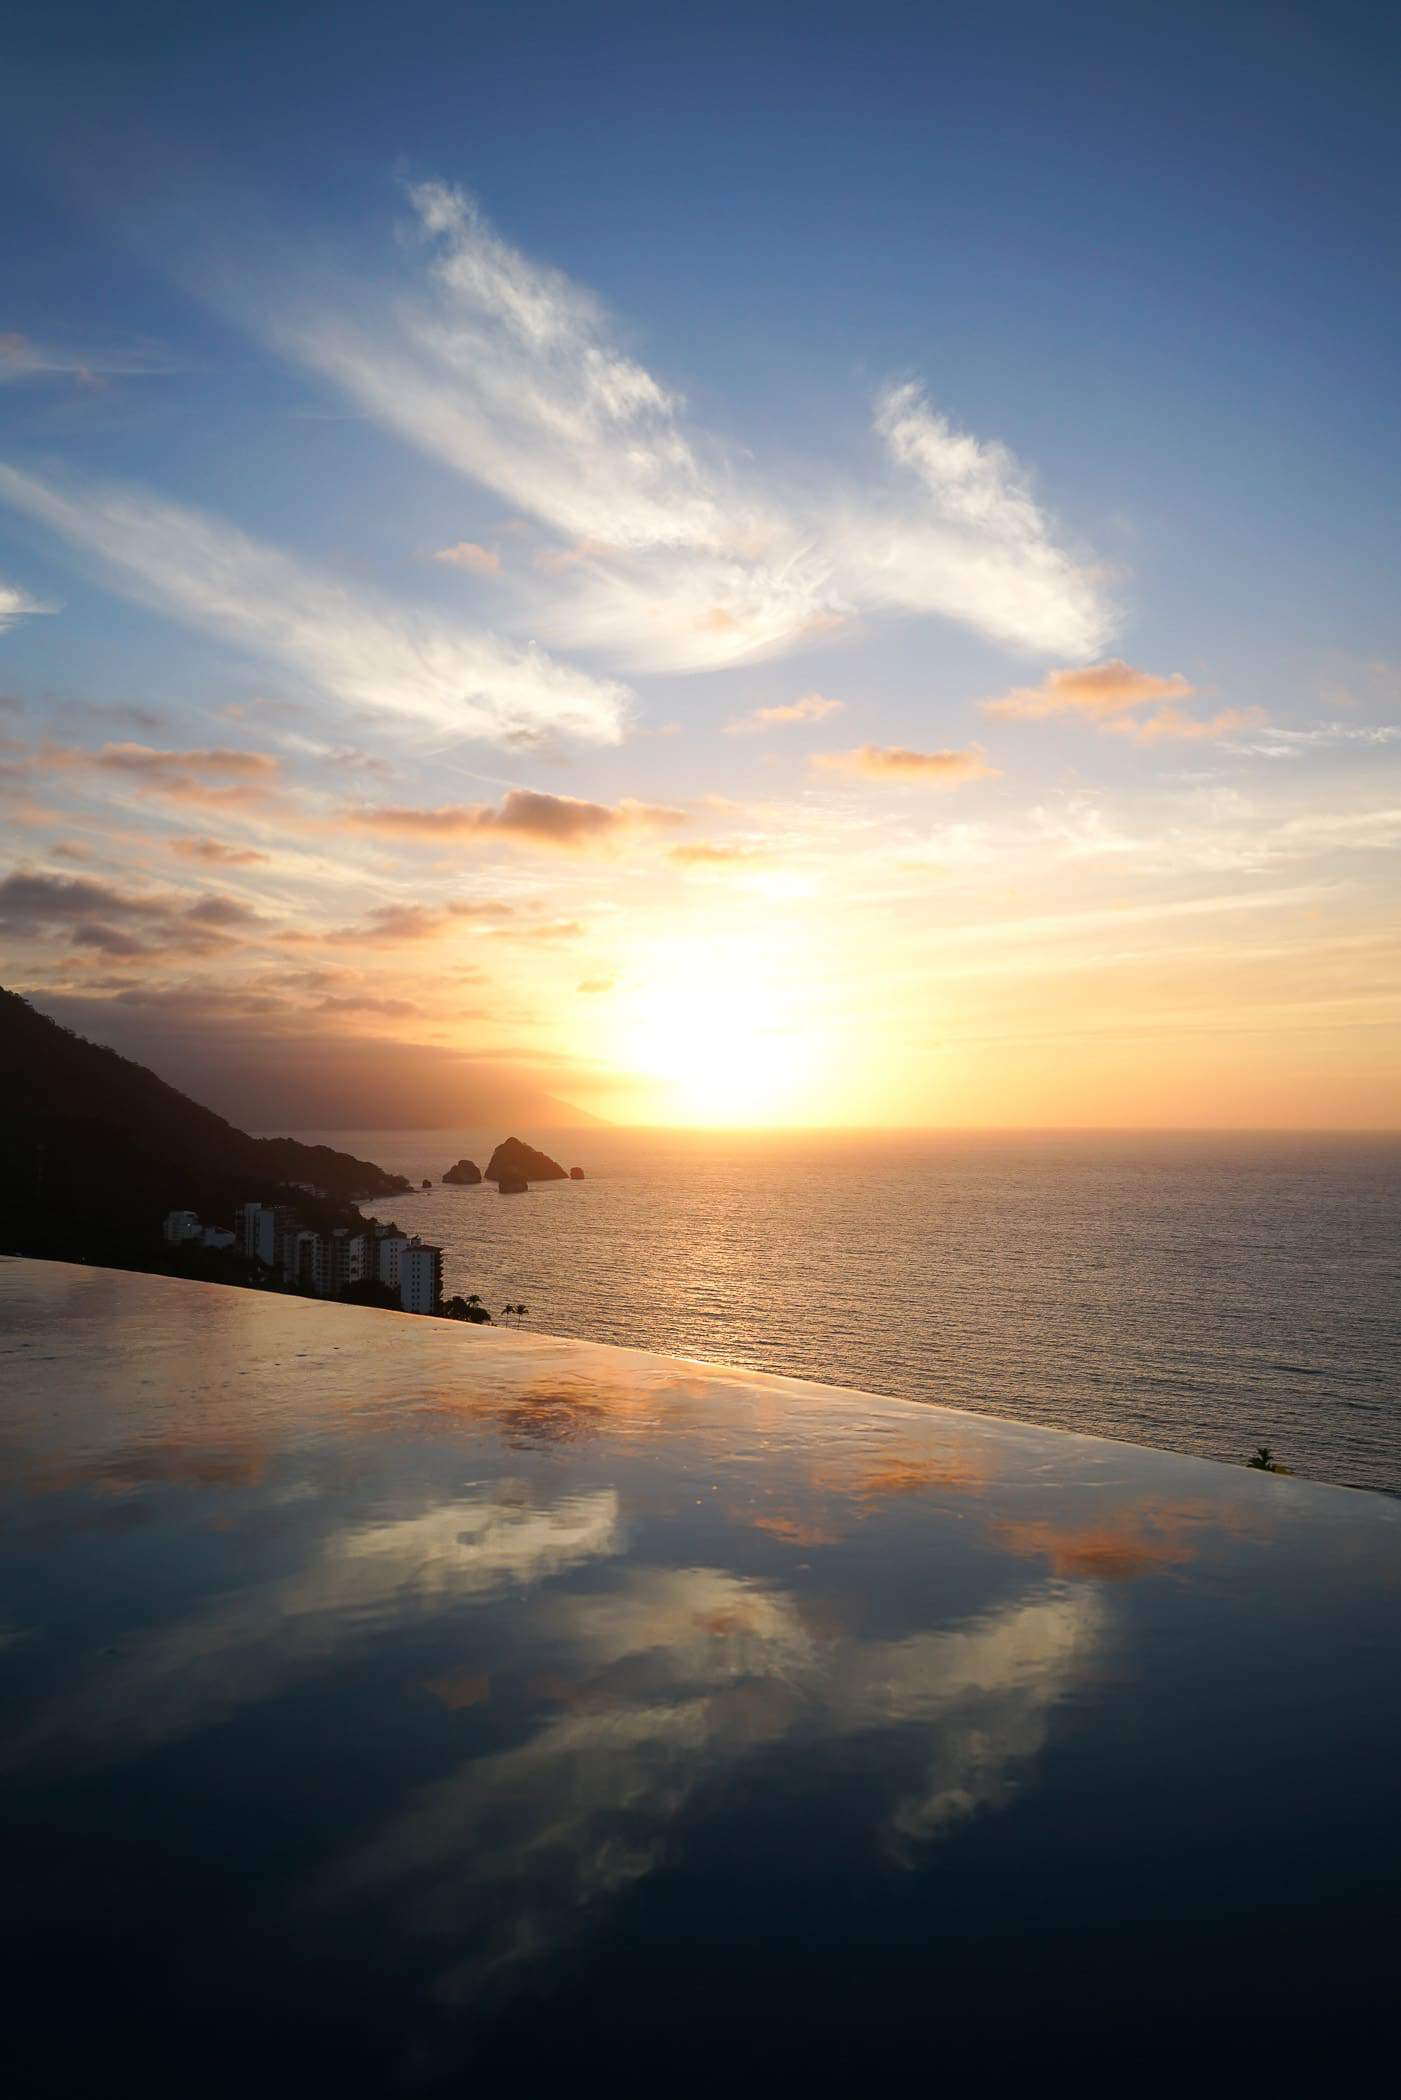 A Lily Love Affair shares a photo of a sunset from the Hotel Mousai roof top pool